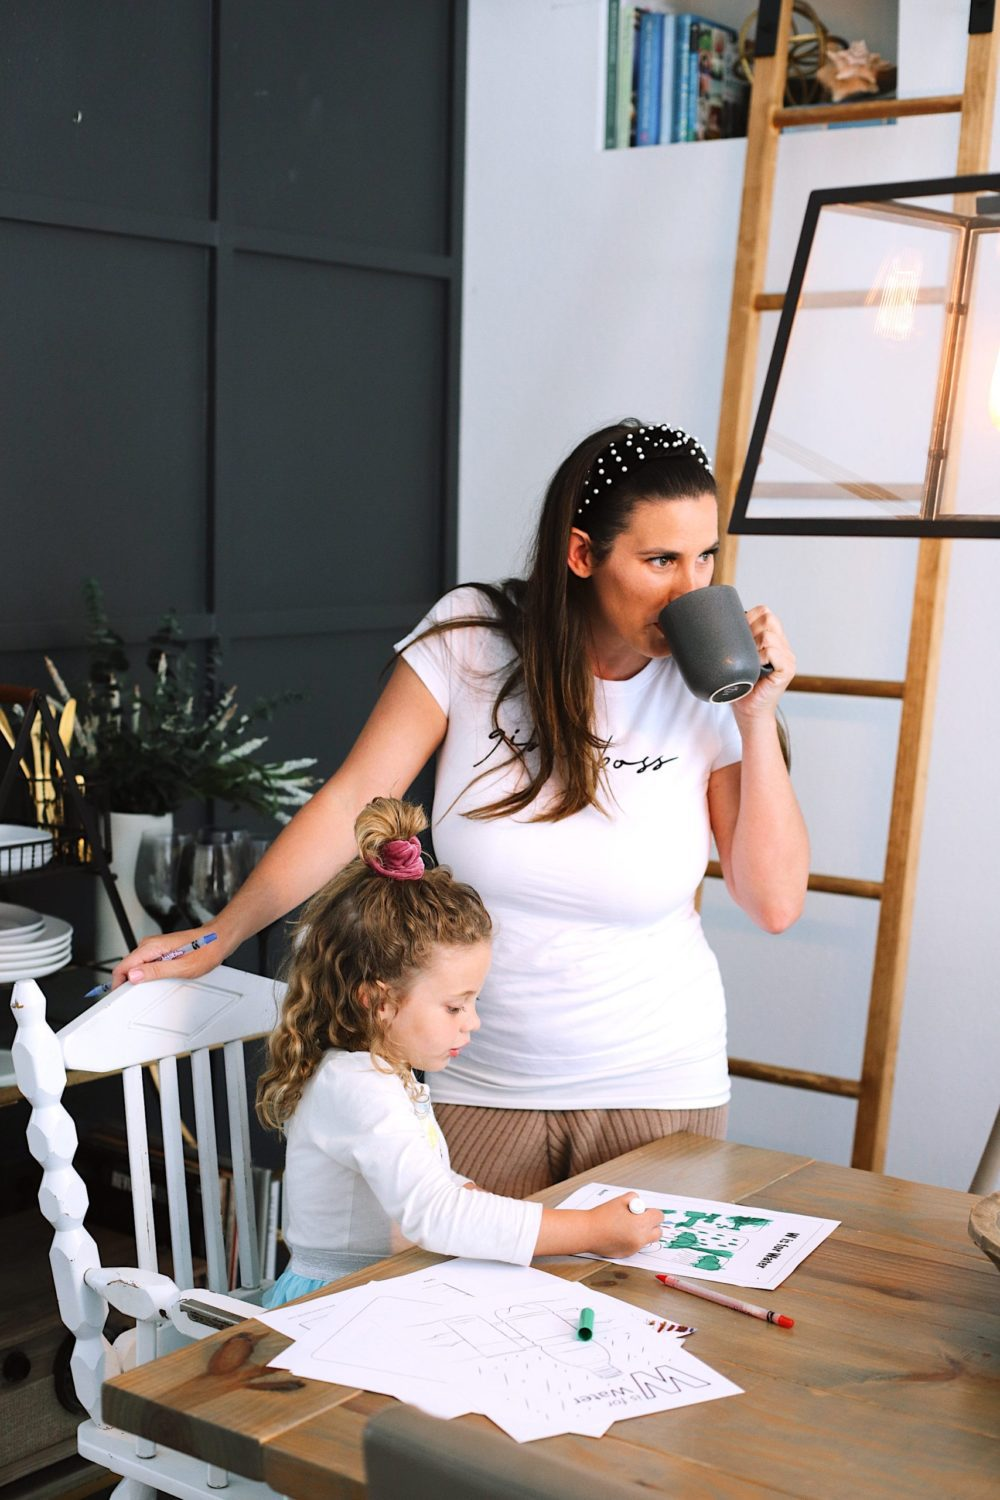 How to Survive Working With Kids at Home - Tips for making the most of working from home with kids homeschooling. Click through for tips from lifestyle blogger Tabitha Blue of Fresh Mommy Blog! | Working From Home With Kids by popular Florida lifestyle blog, Fresh Mommy Blog: image of a mom standing next to her daughter as she sits at the table and does homeschooling work.